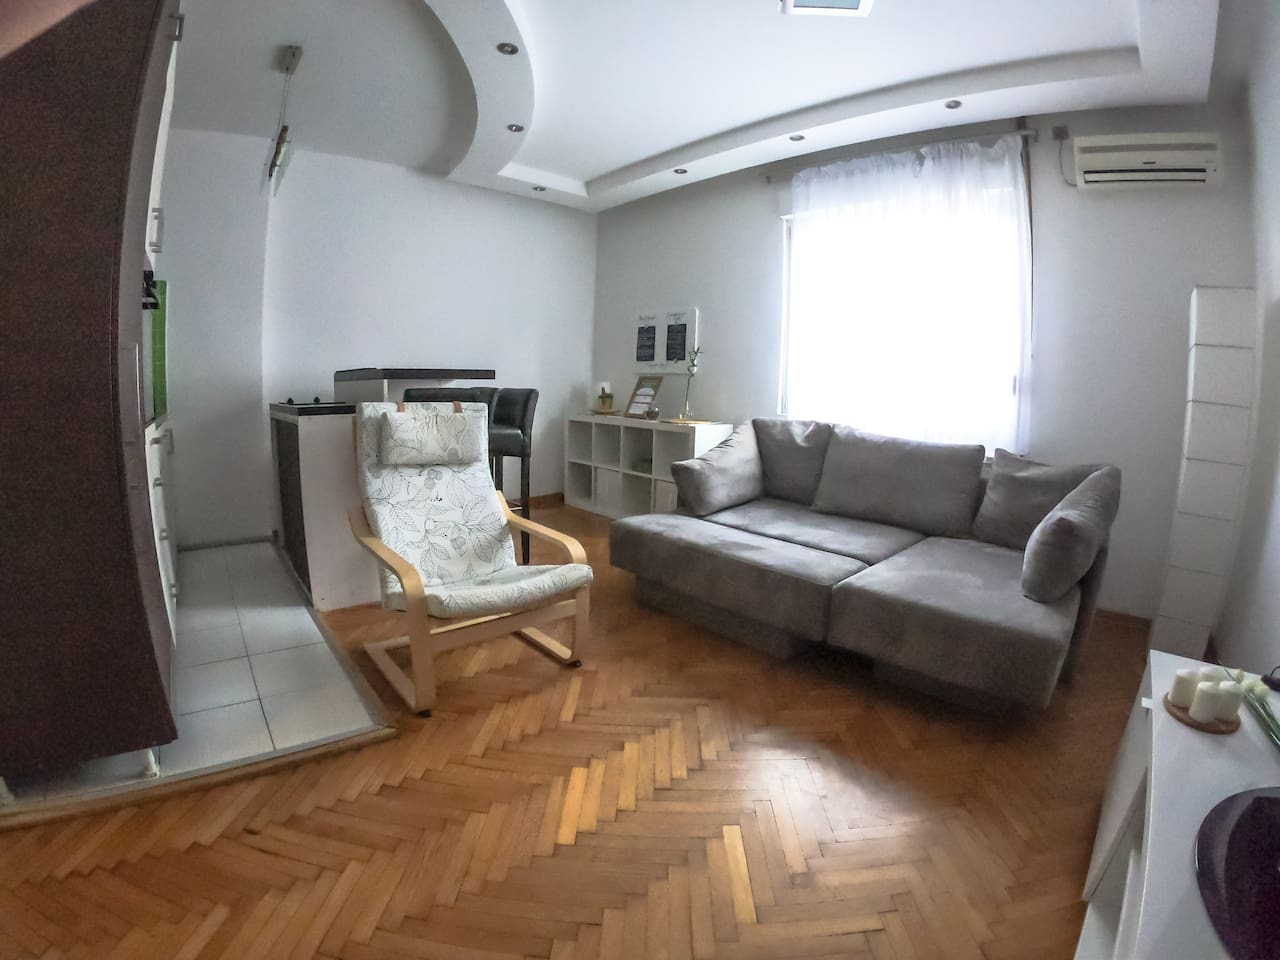 Modern living room with kitchen island  which serves as dining area for 4 persons. Comfortable sofa for lounging. Air Conditioning and central heating will make sure the temperature is perfect even during coldest winter and hottest midsummer days.